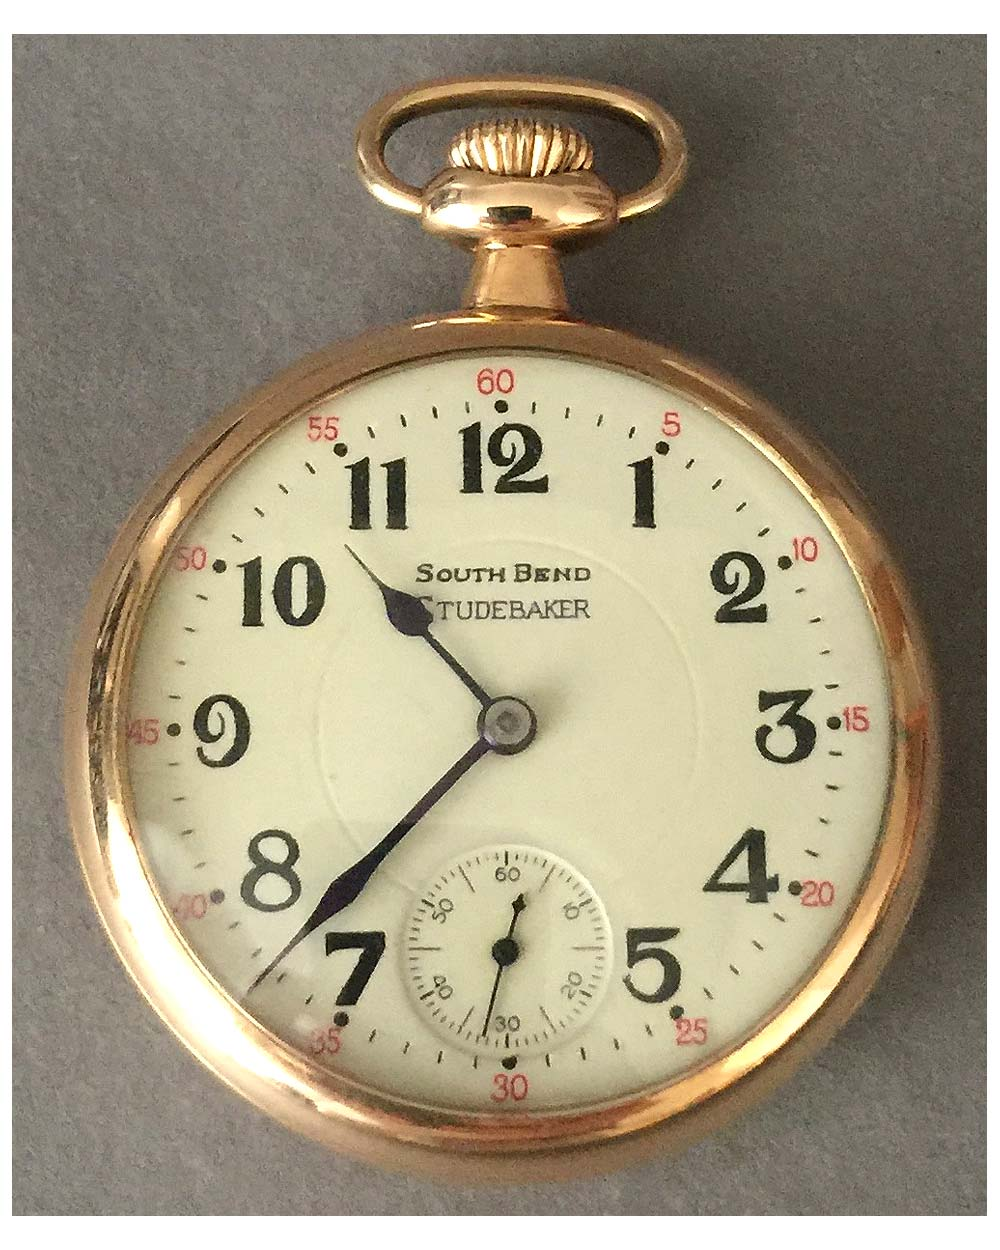 Studebaker Pocket Watch By South Bend